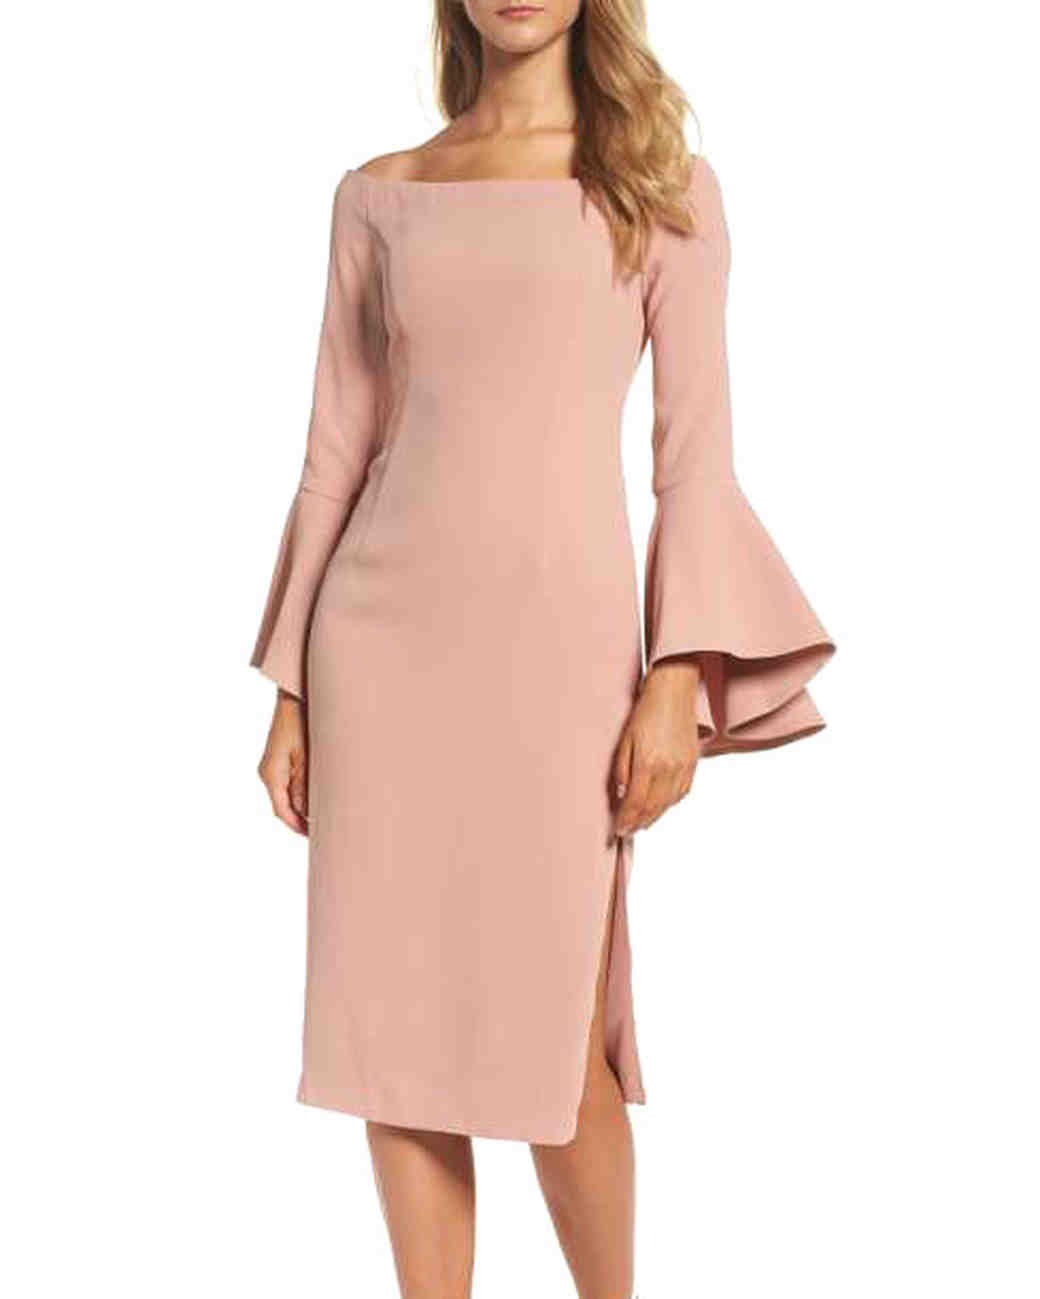 Best dresses for fall wedding ideas styles ideas 2018 for Best dresses to wear to a wedding